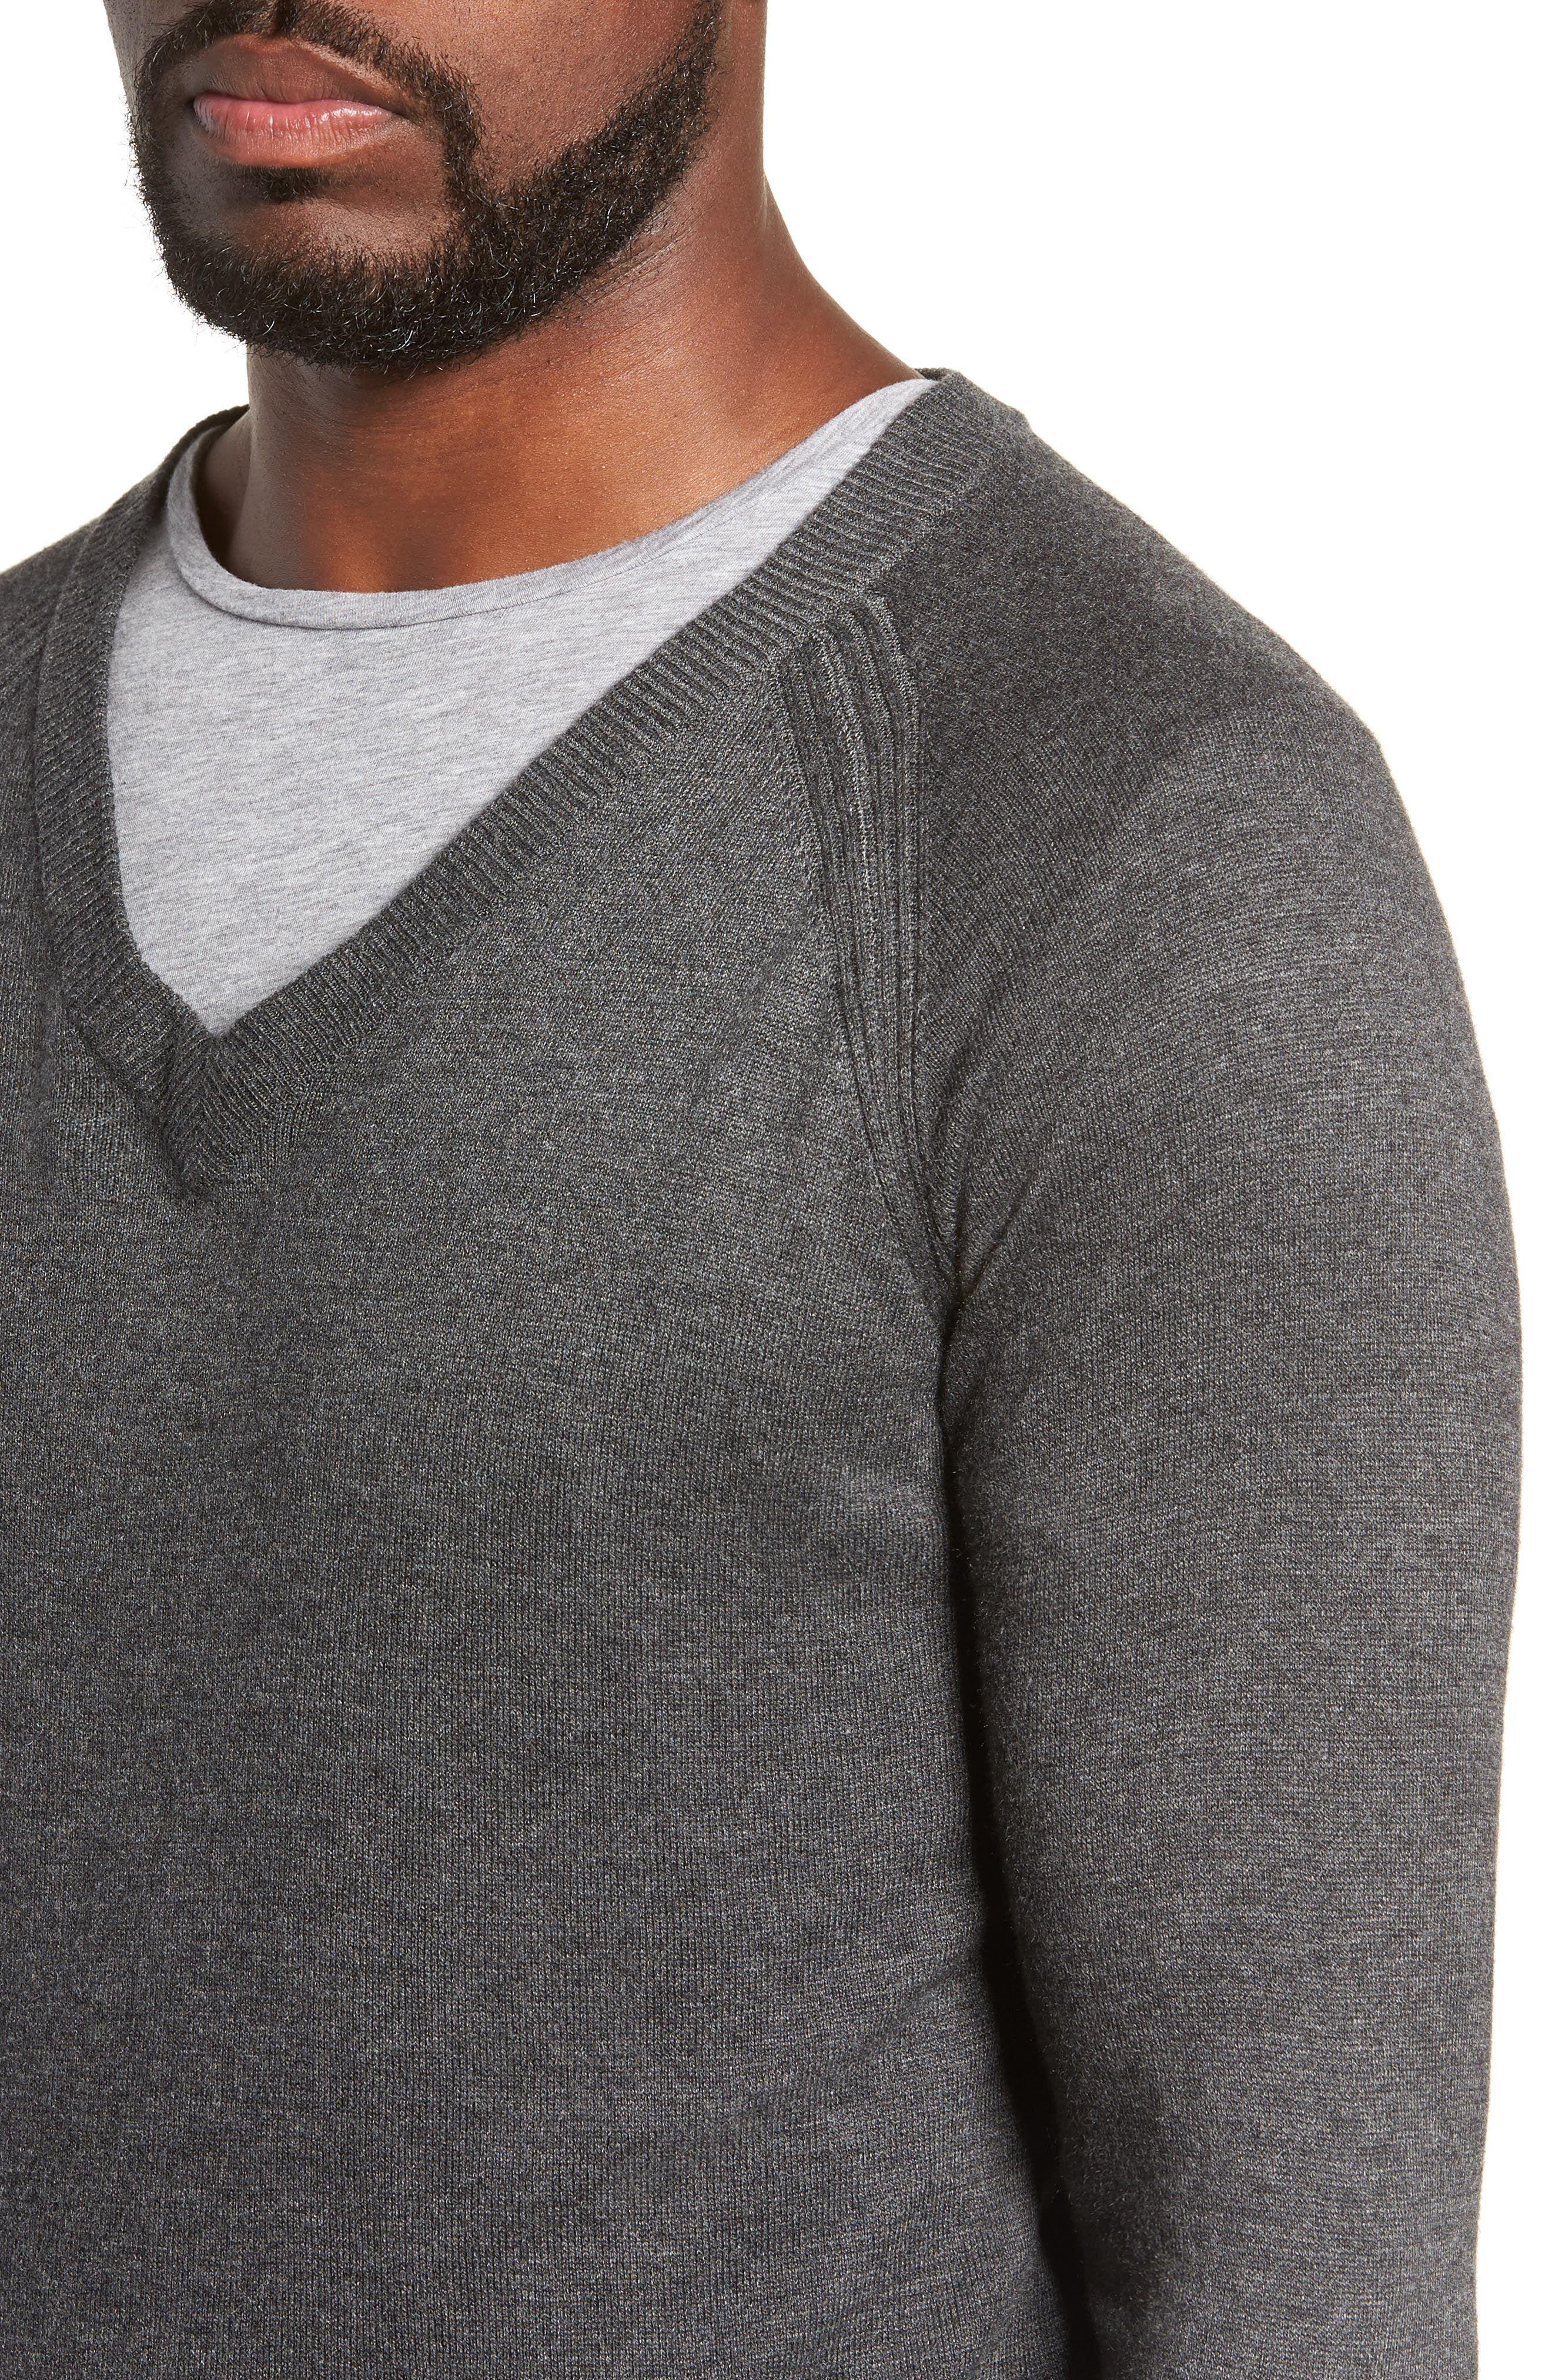 Salinas Cash V-Neck Sweater,                             Alternate thumbnail 4, color,                             CHARCOAL HEATHER